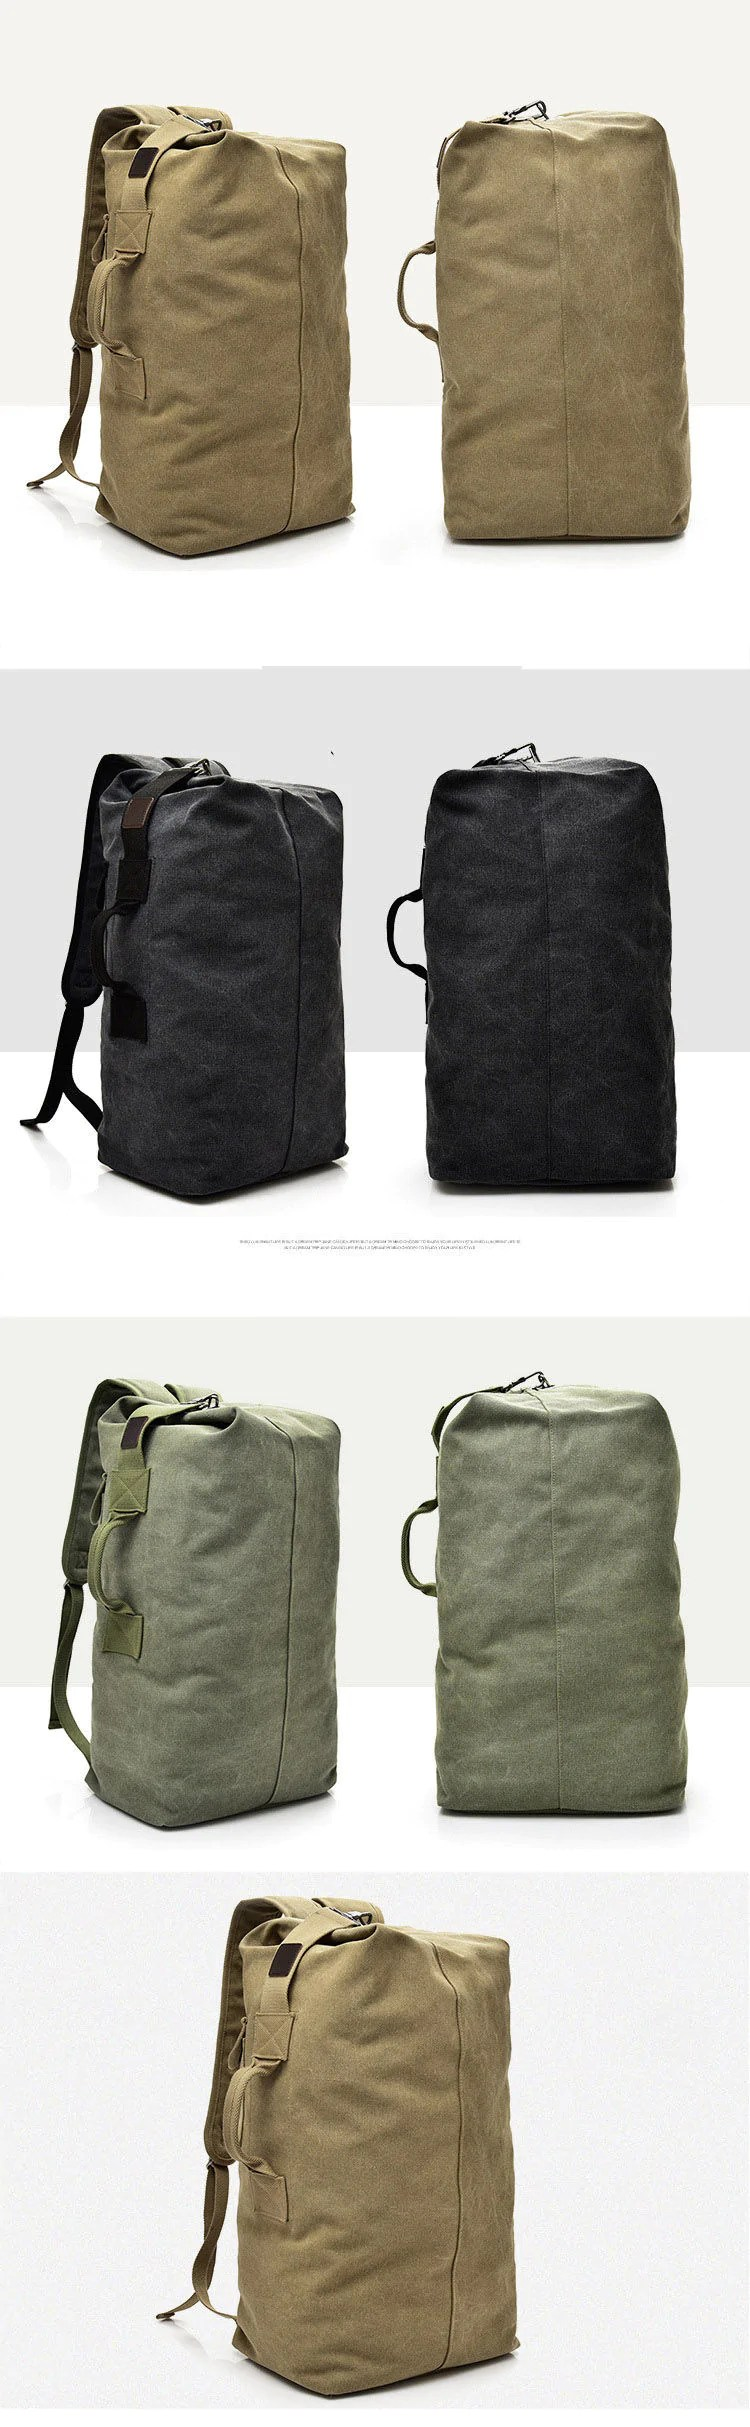 Travel Rucksack Multifunctional Military Tactical Canvas Kit Bag Army Duffle Bag Travel Rucksack